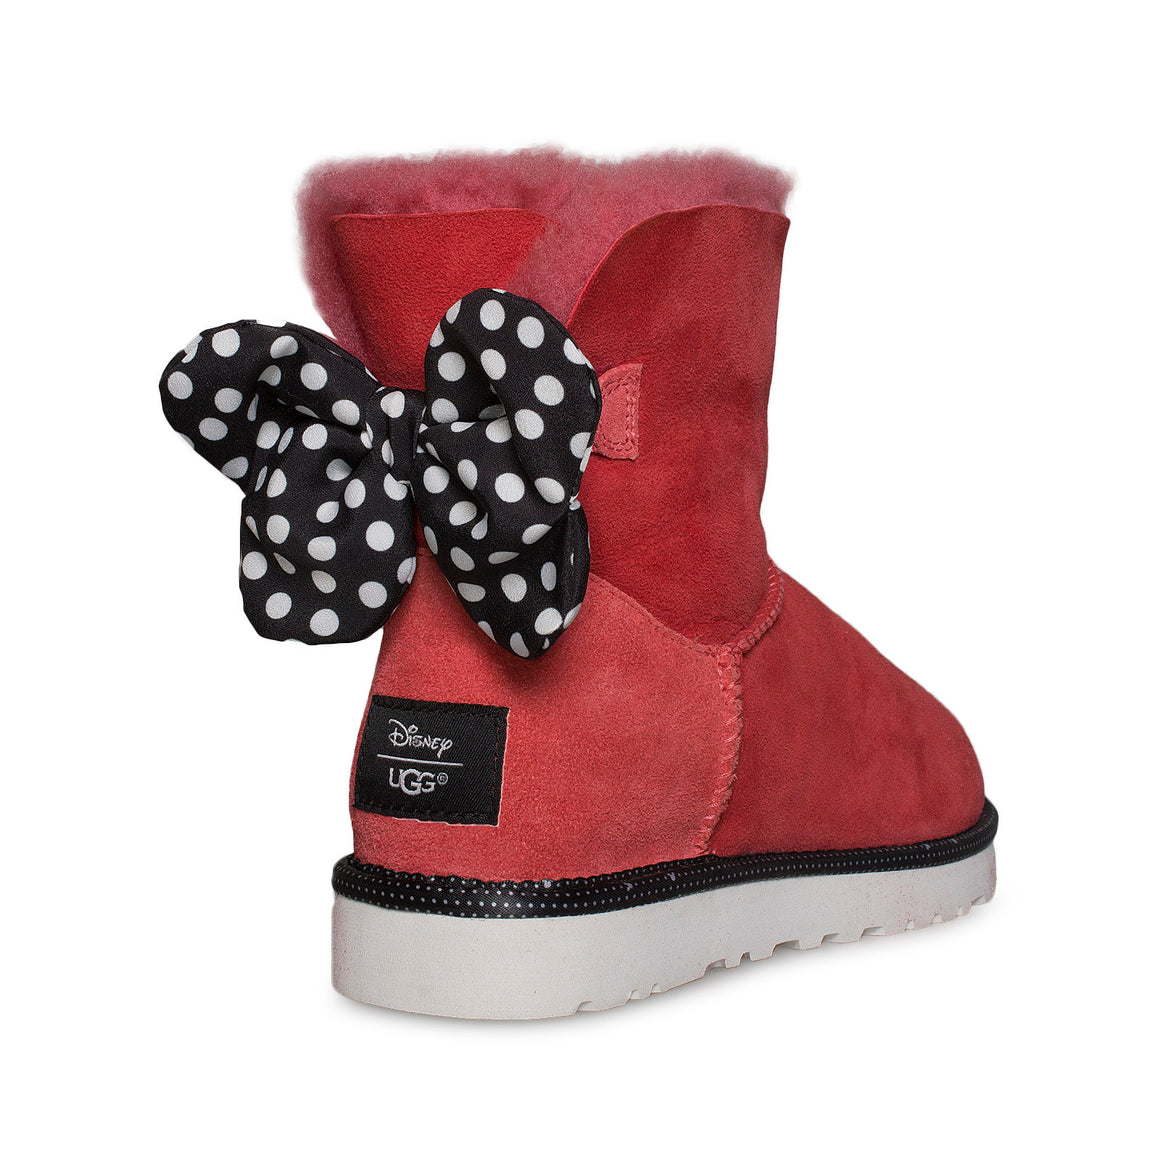 UGG Disney Minney Mouse Sweetie Bow Red Boots - Women's